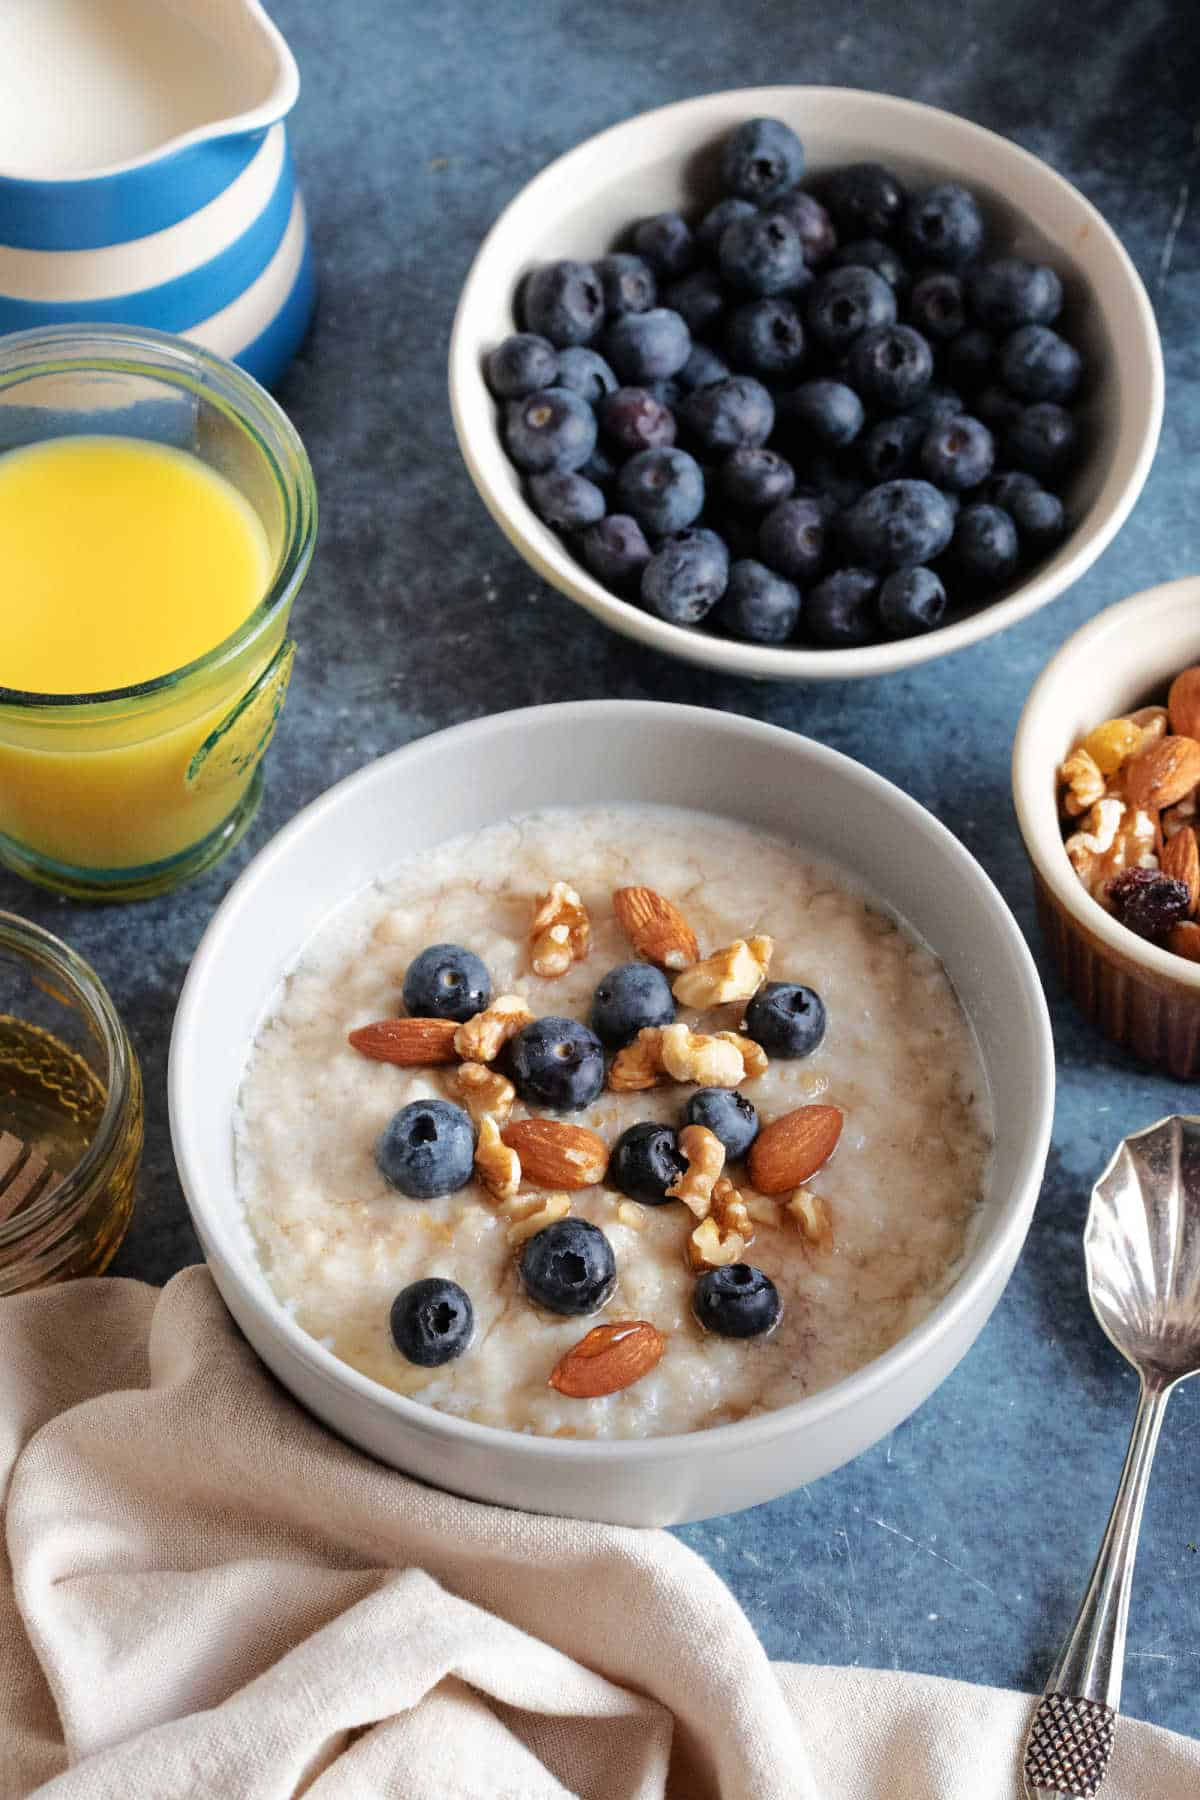 A bowl of slow cooker porridge with blueberries, nuts and honey.